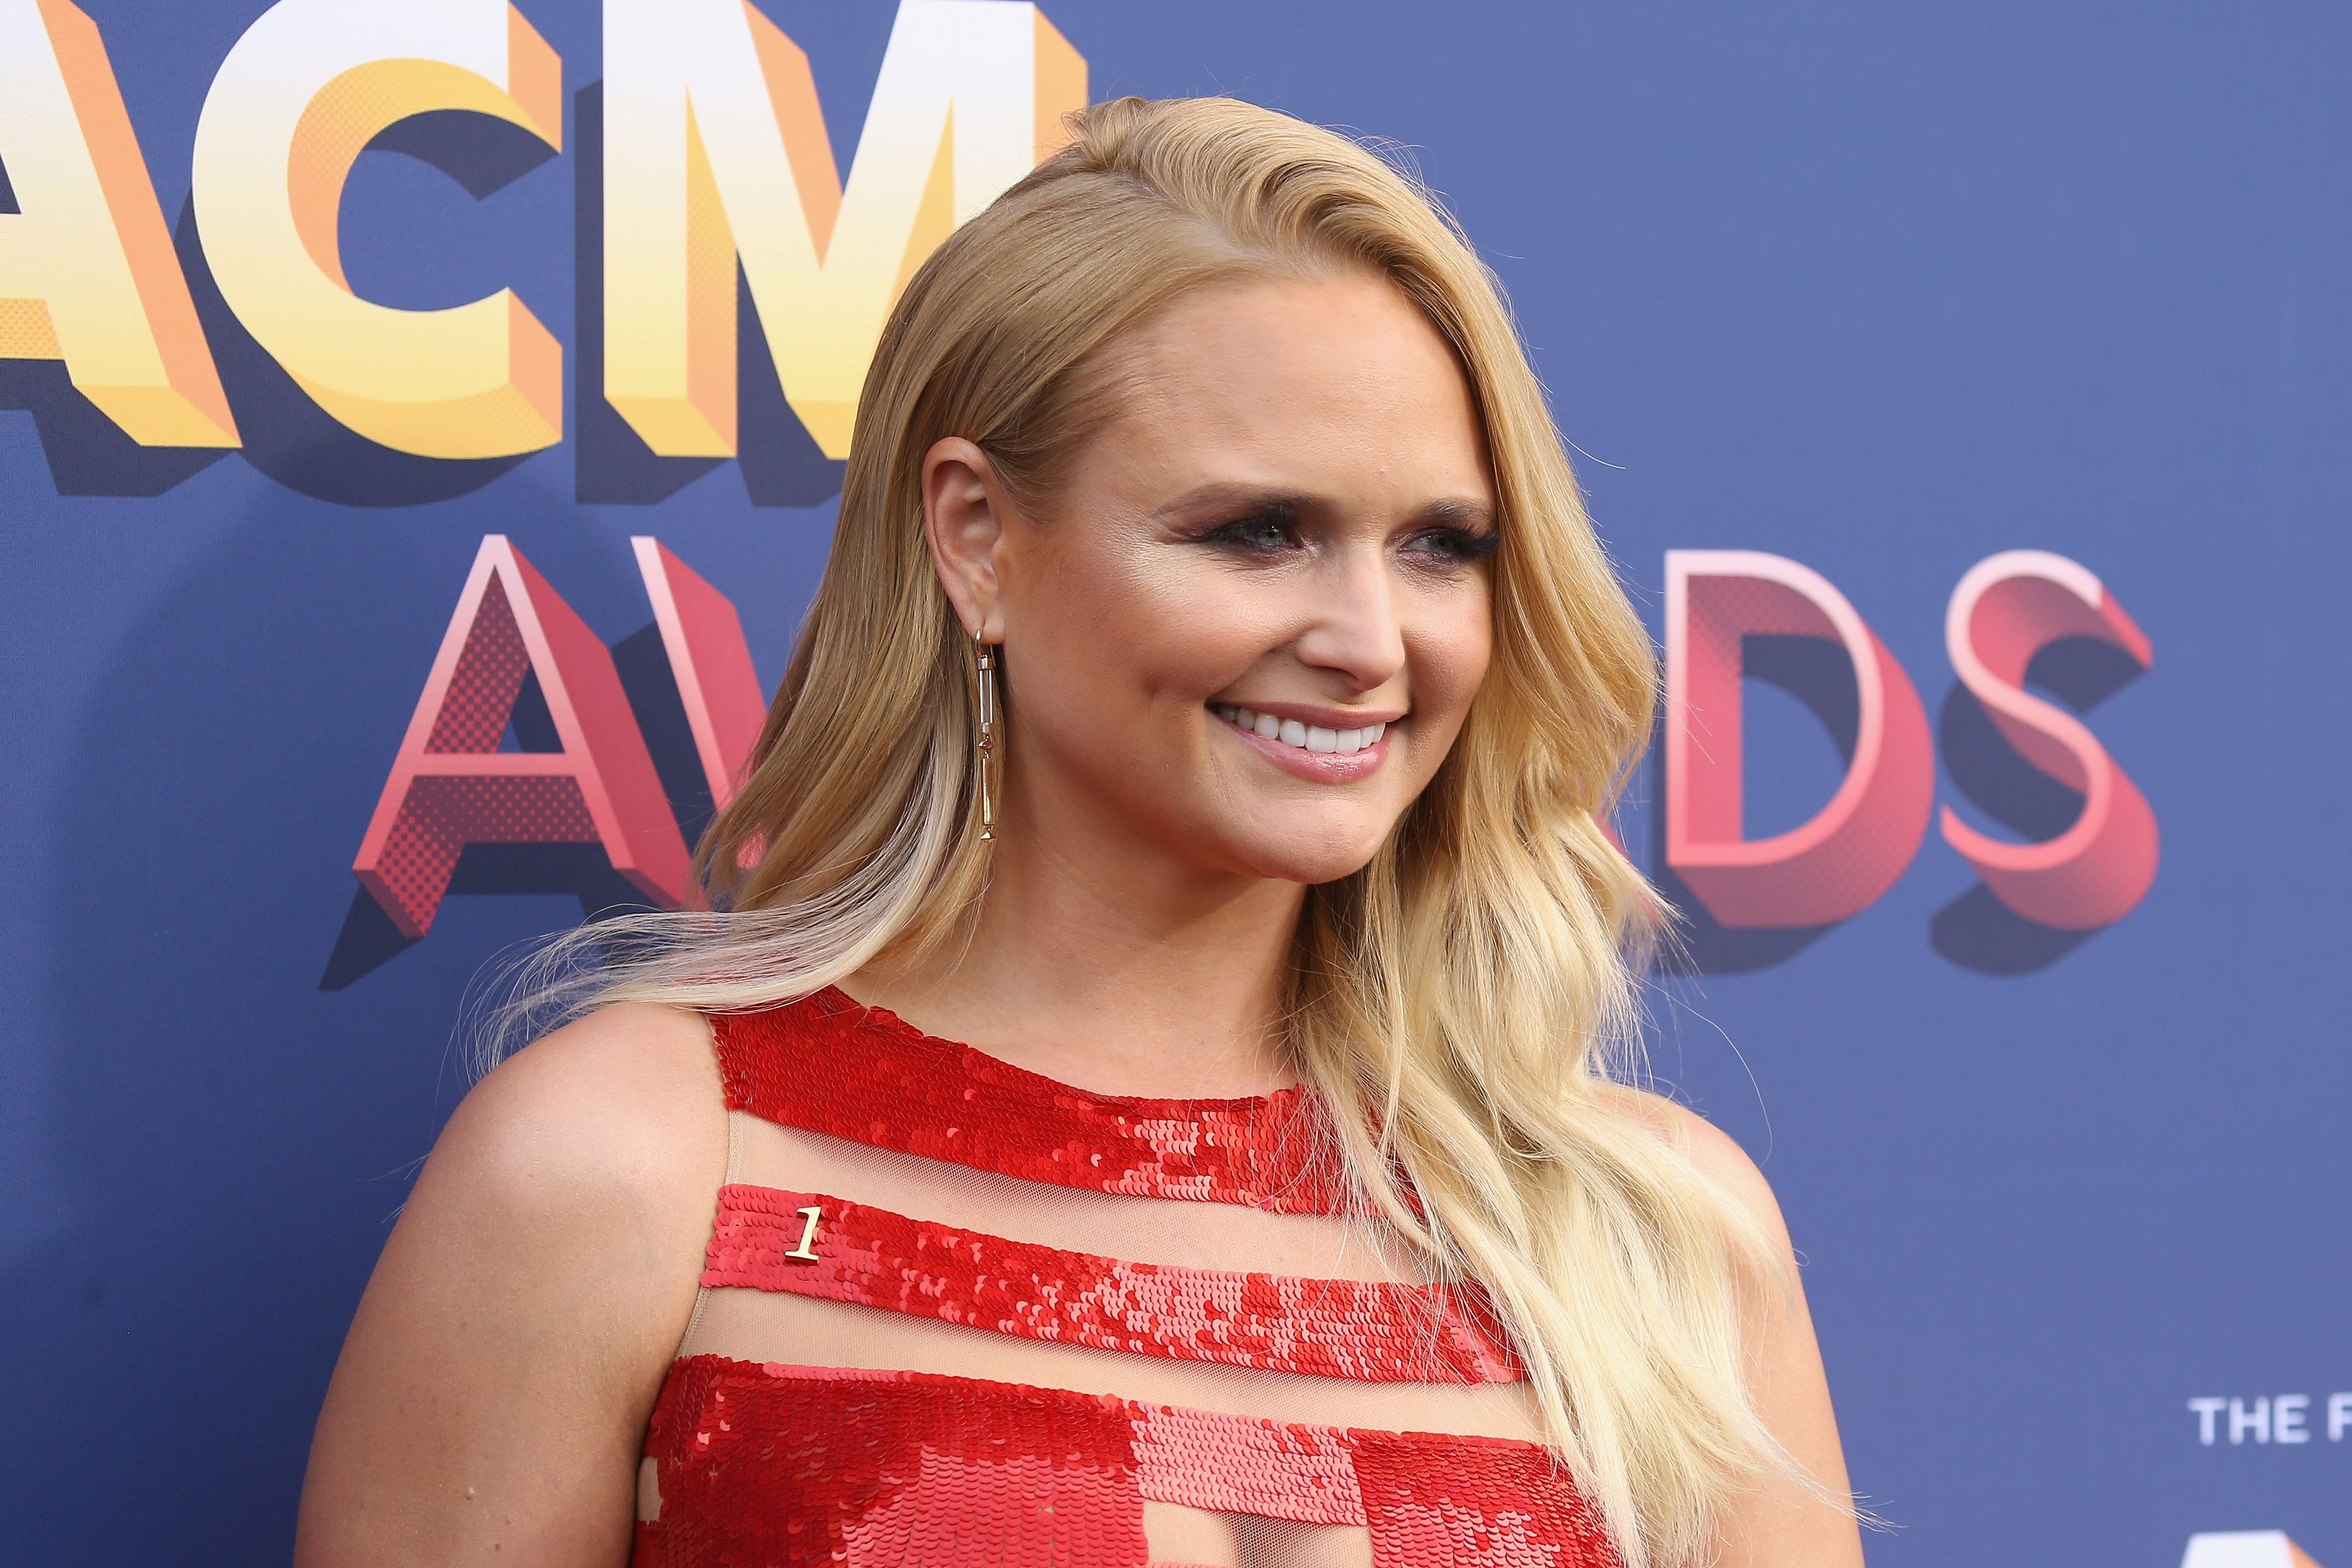 Miranda Lambert during the 53rd Academy of Country Music Awards at MGM Grand Garden Arena on April 15, 2018 in Las Vegas, Nevada. | Source: Getty Images